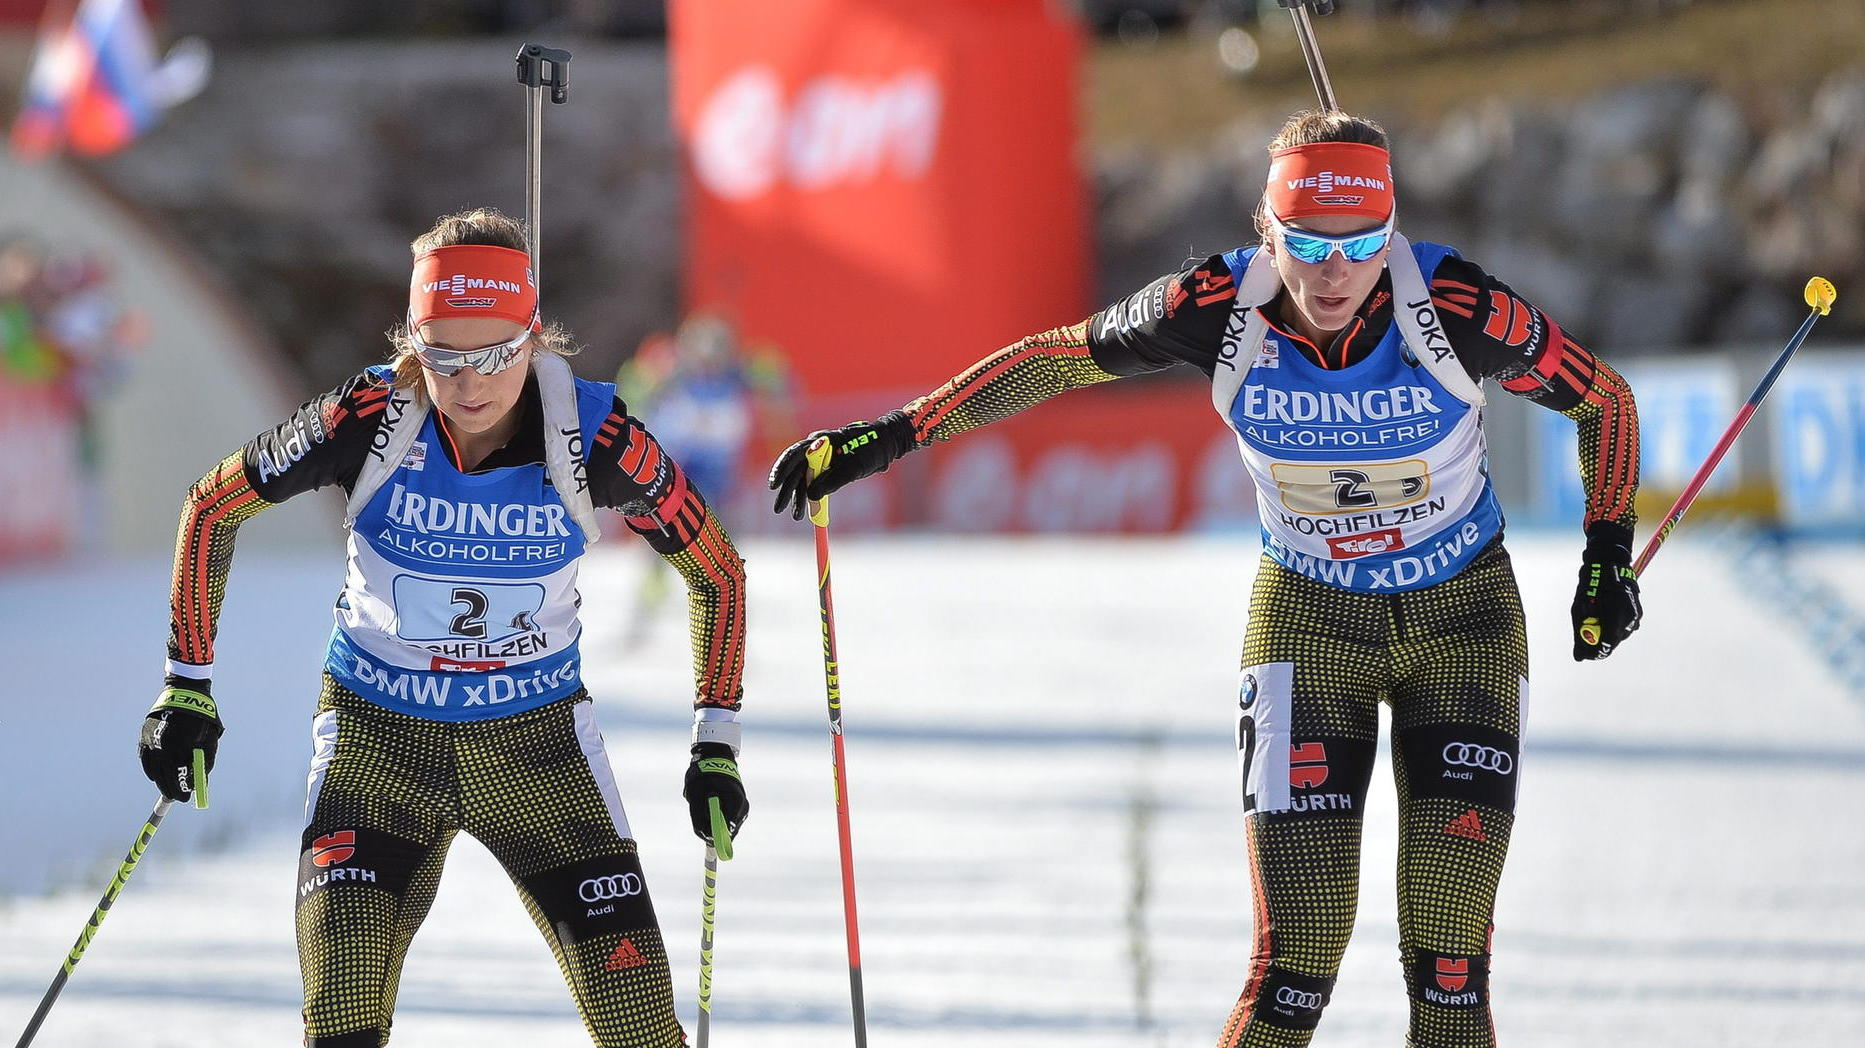 Damen Biathlon Staffel